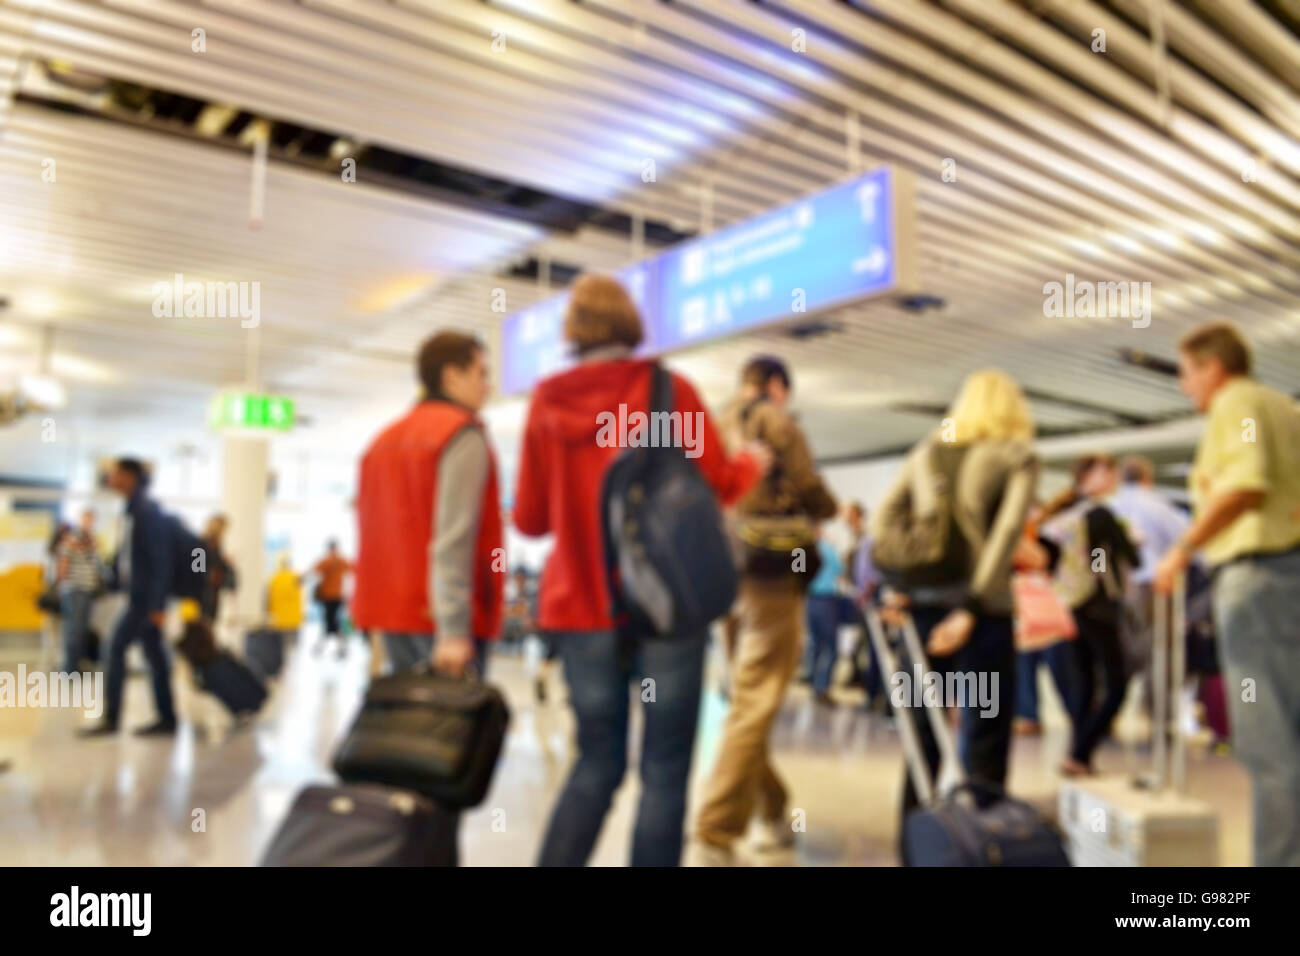 Blurred background of a very busy European international airport during the day - Stock Image